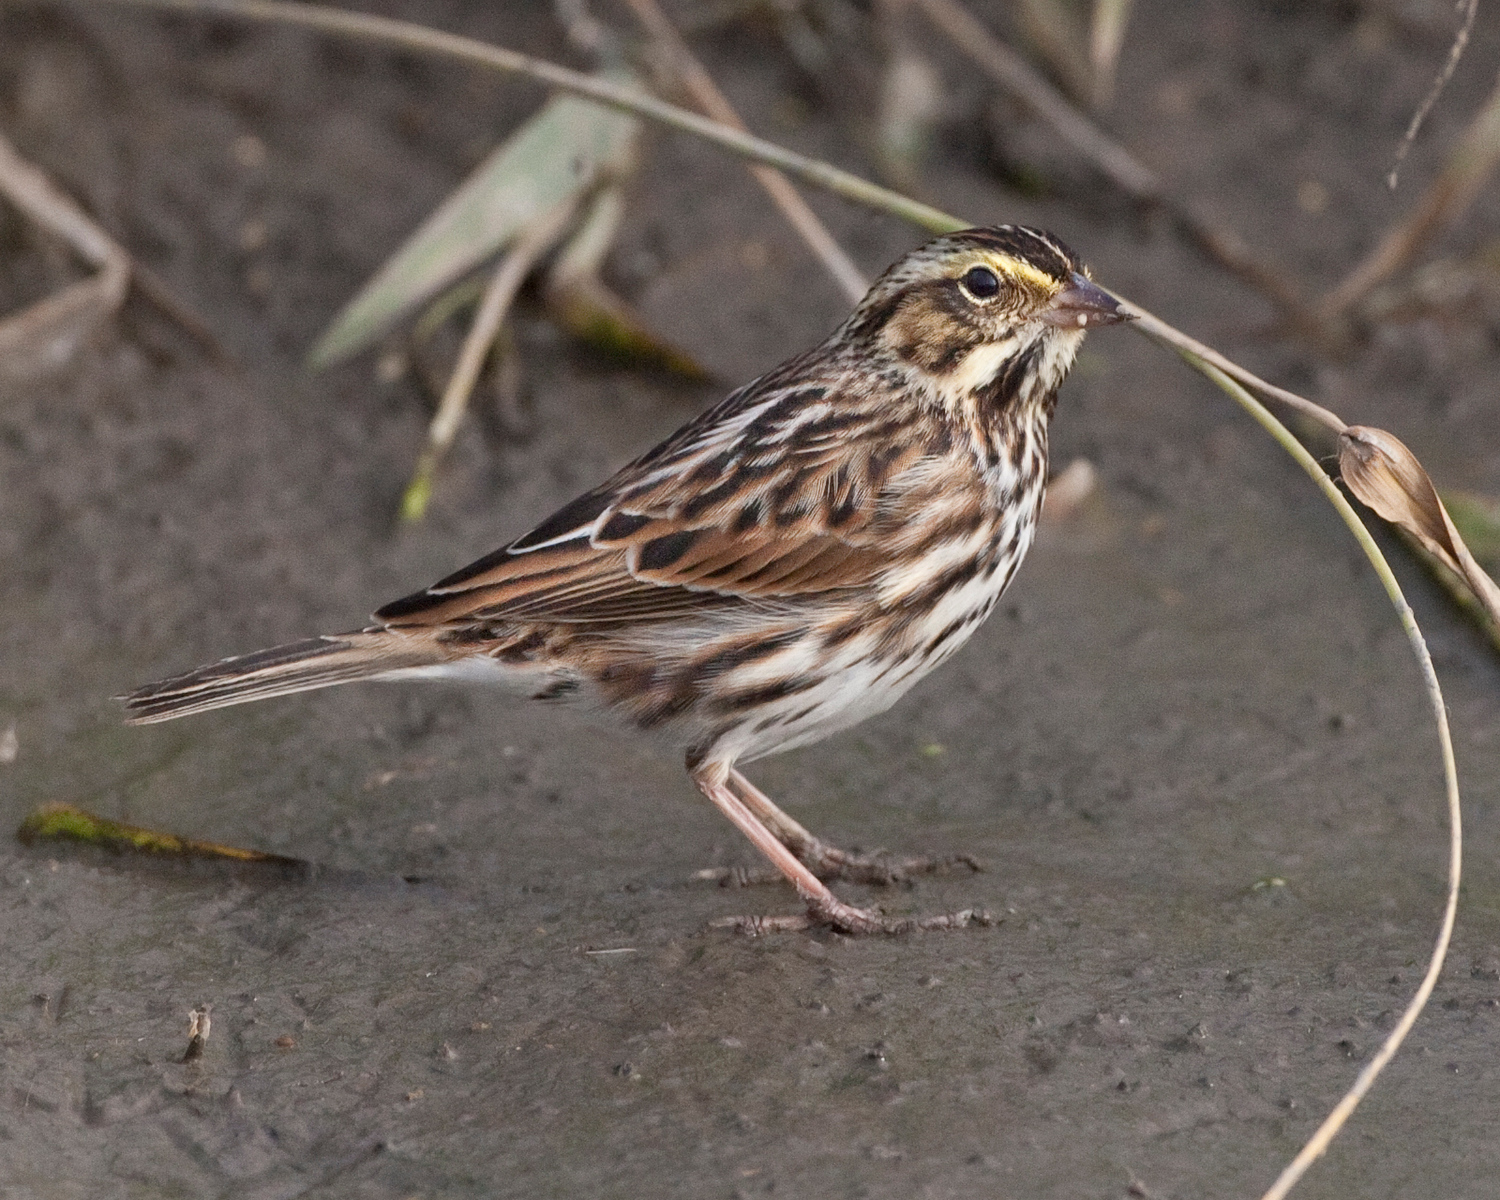 Savannah Sparrow, McCool Basin, Portage County, Indiana, October 2010.